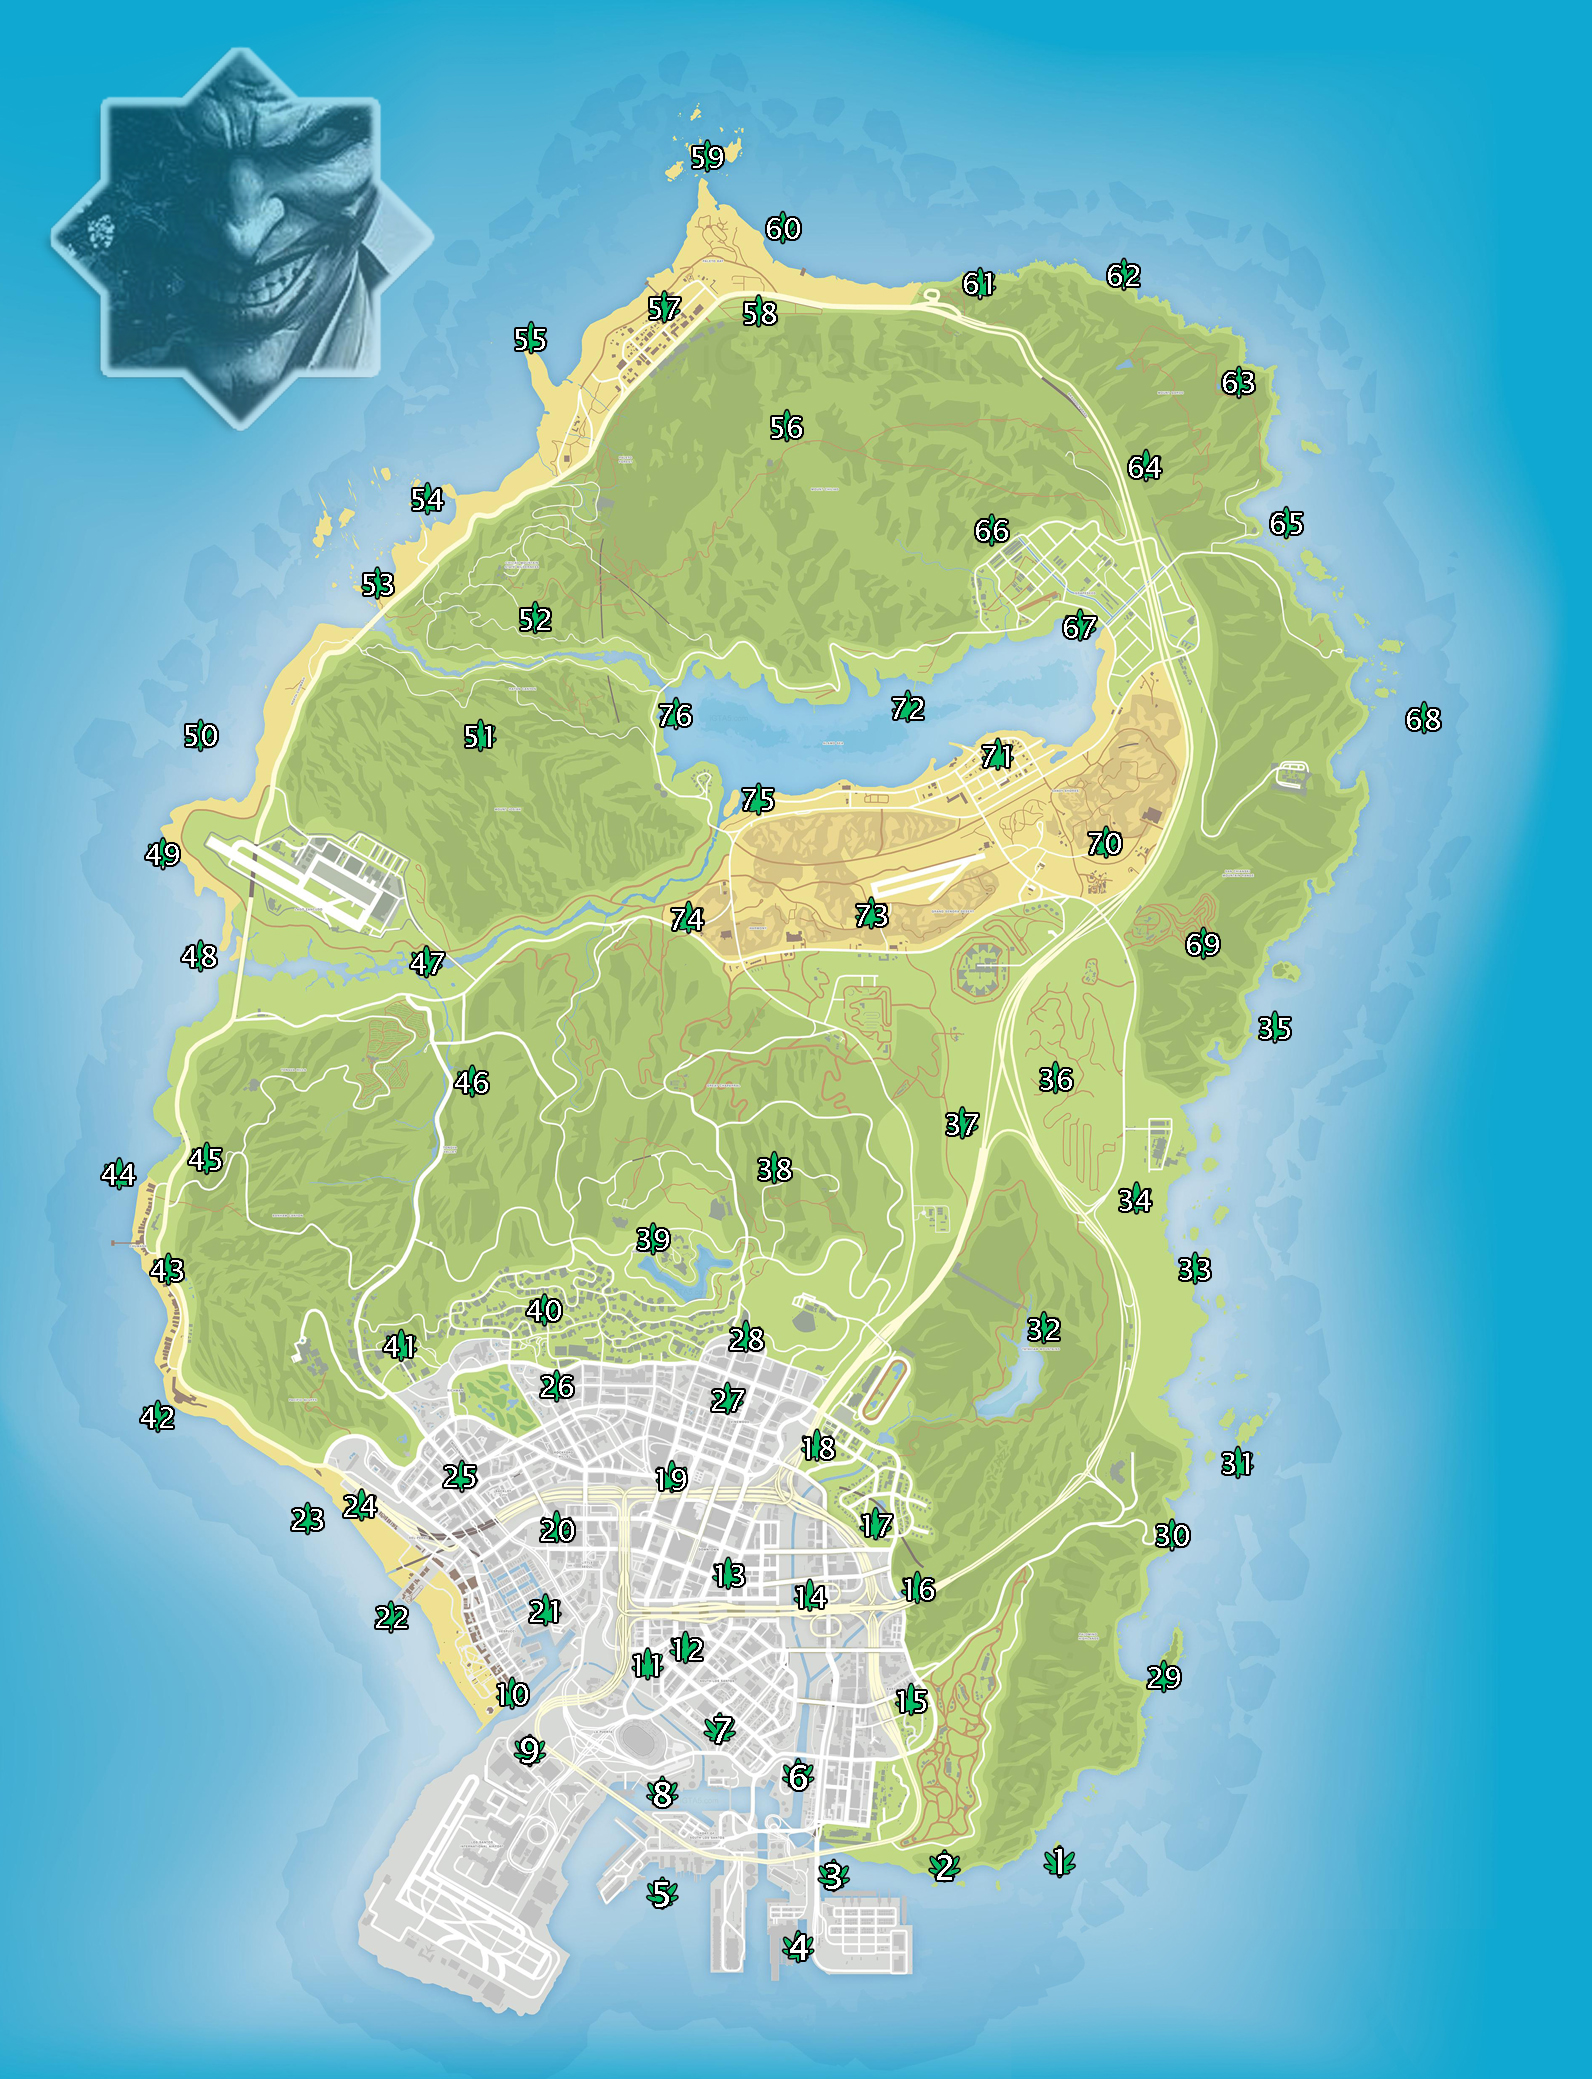 Gta Peyote Locations : peyote, locations, Peyote, Locations, Online